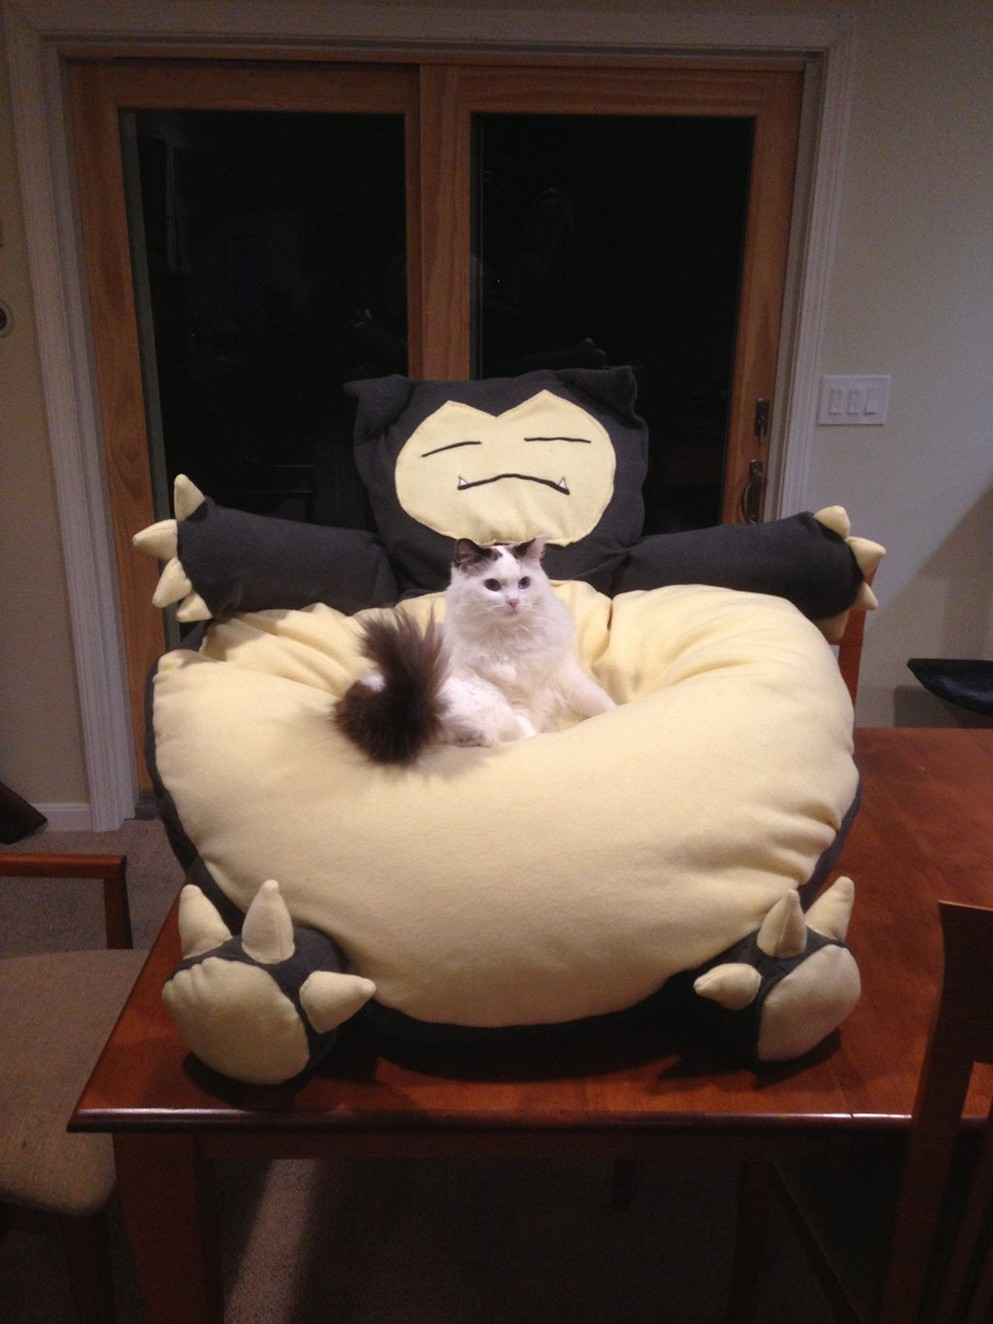 Where Can I Buy Snorlax Bean Bag Chair